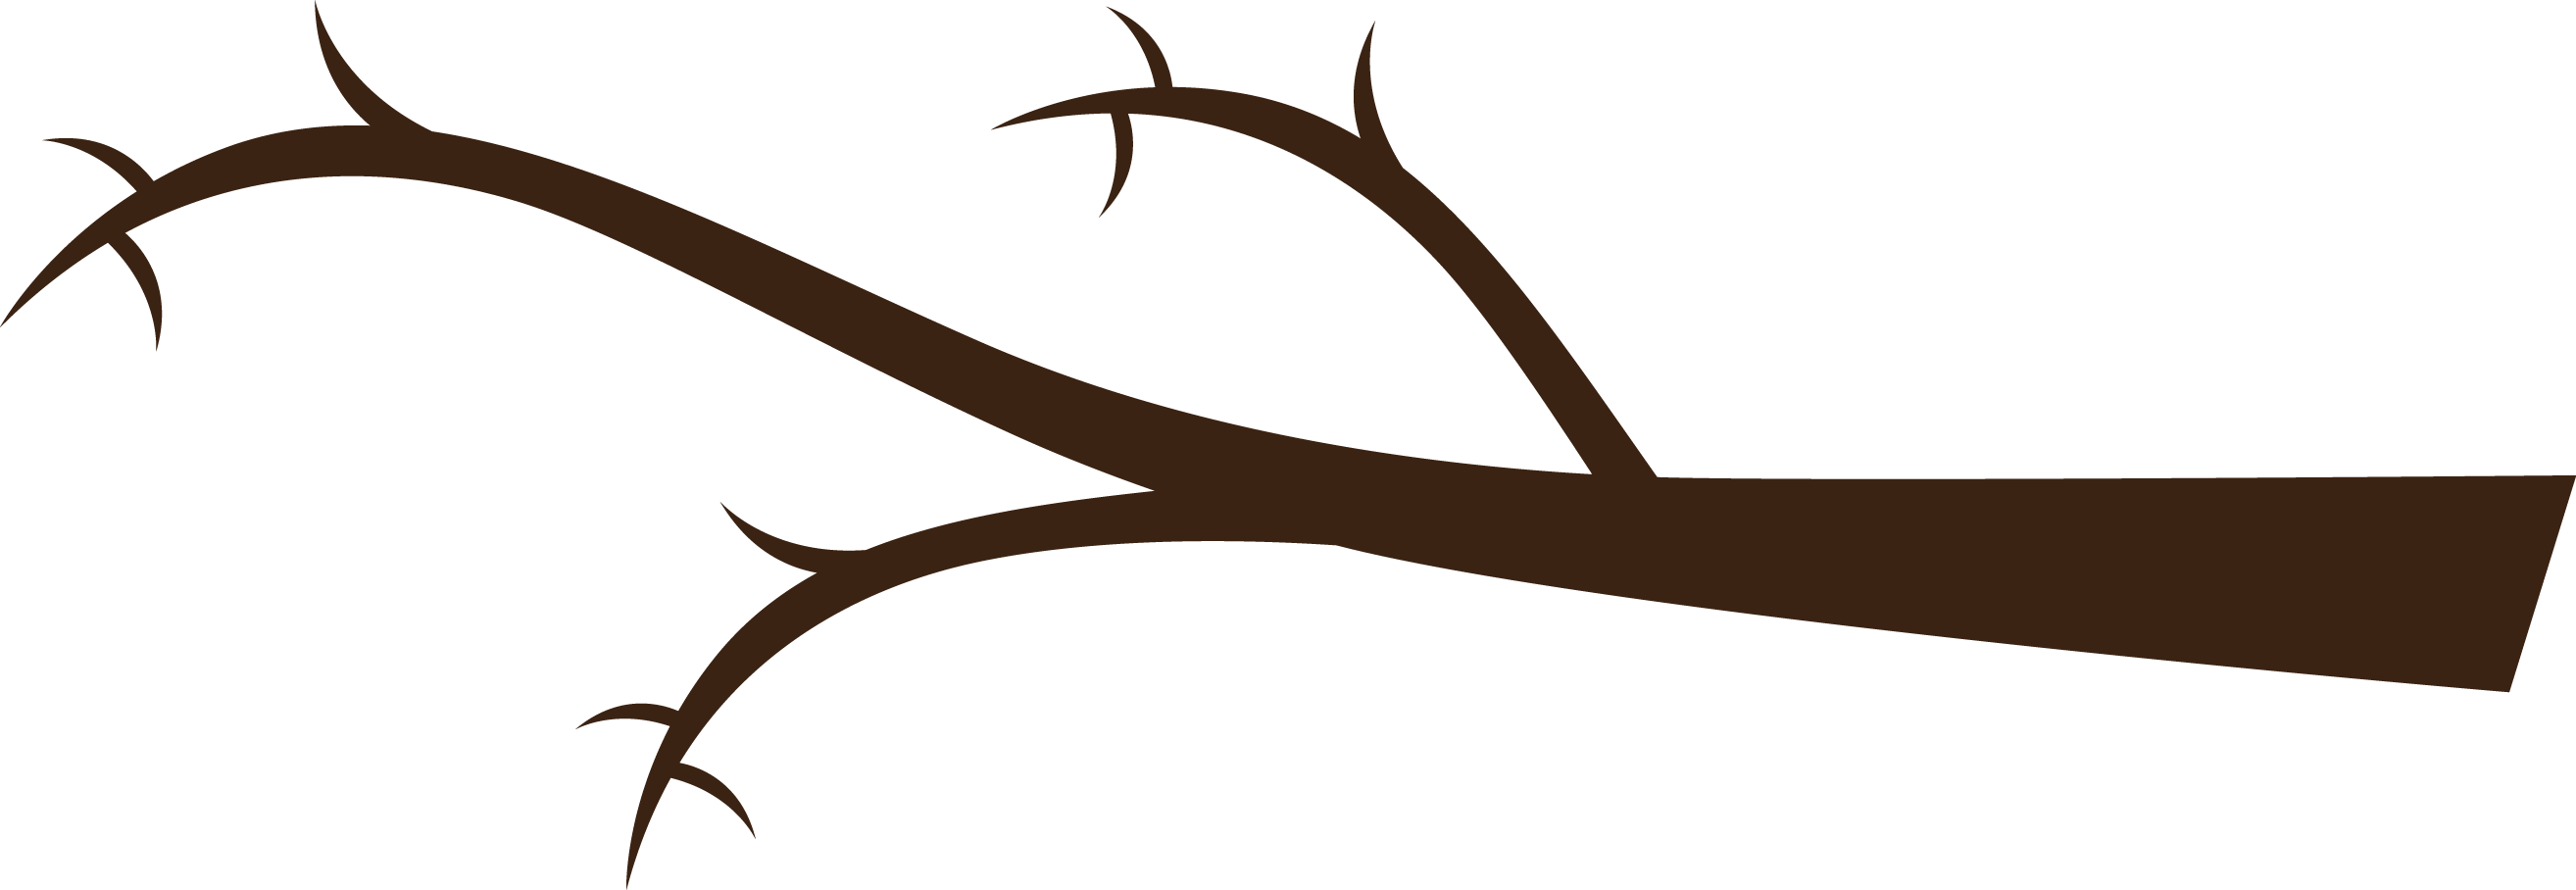 Free Tree Branches Transparent Background, Download Free.